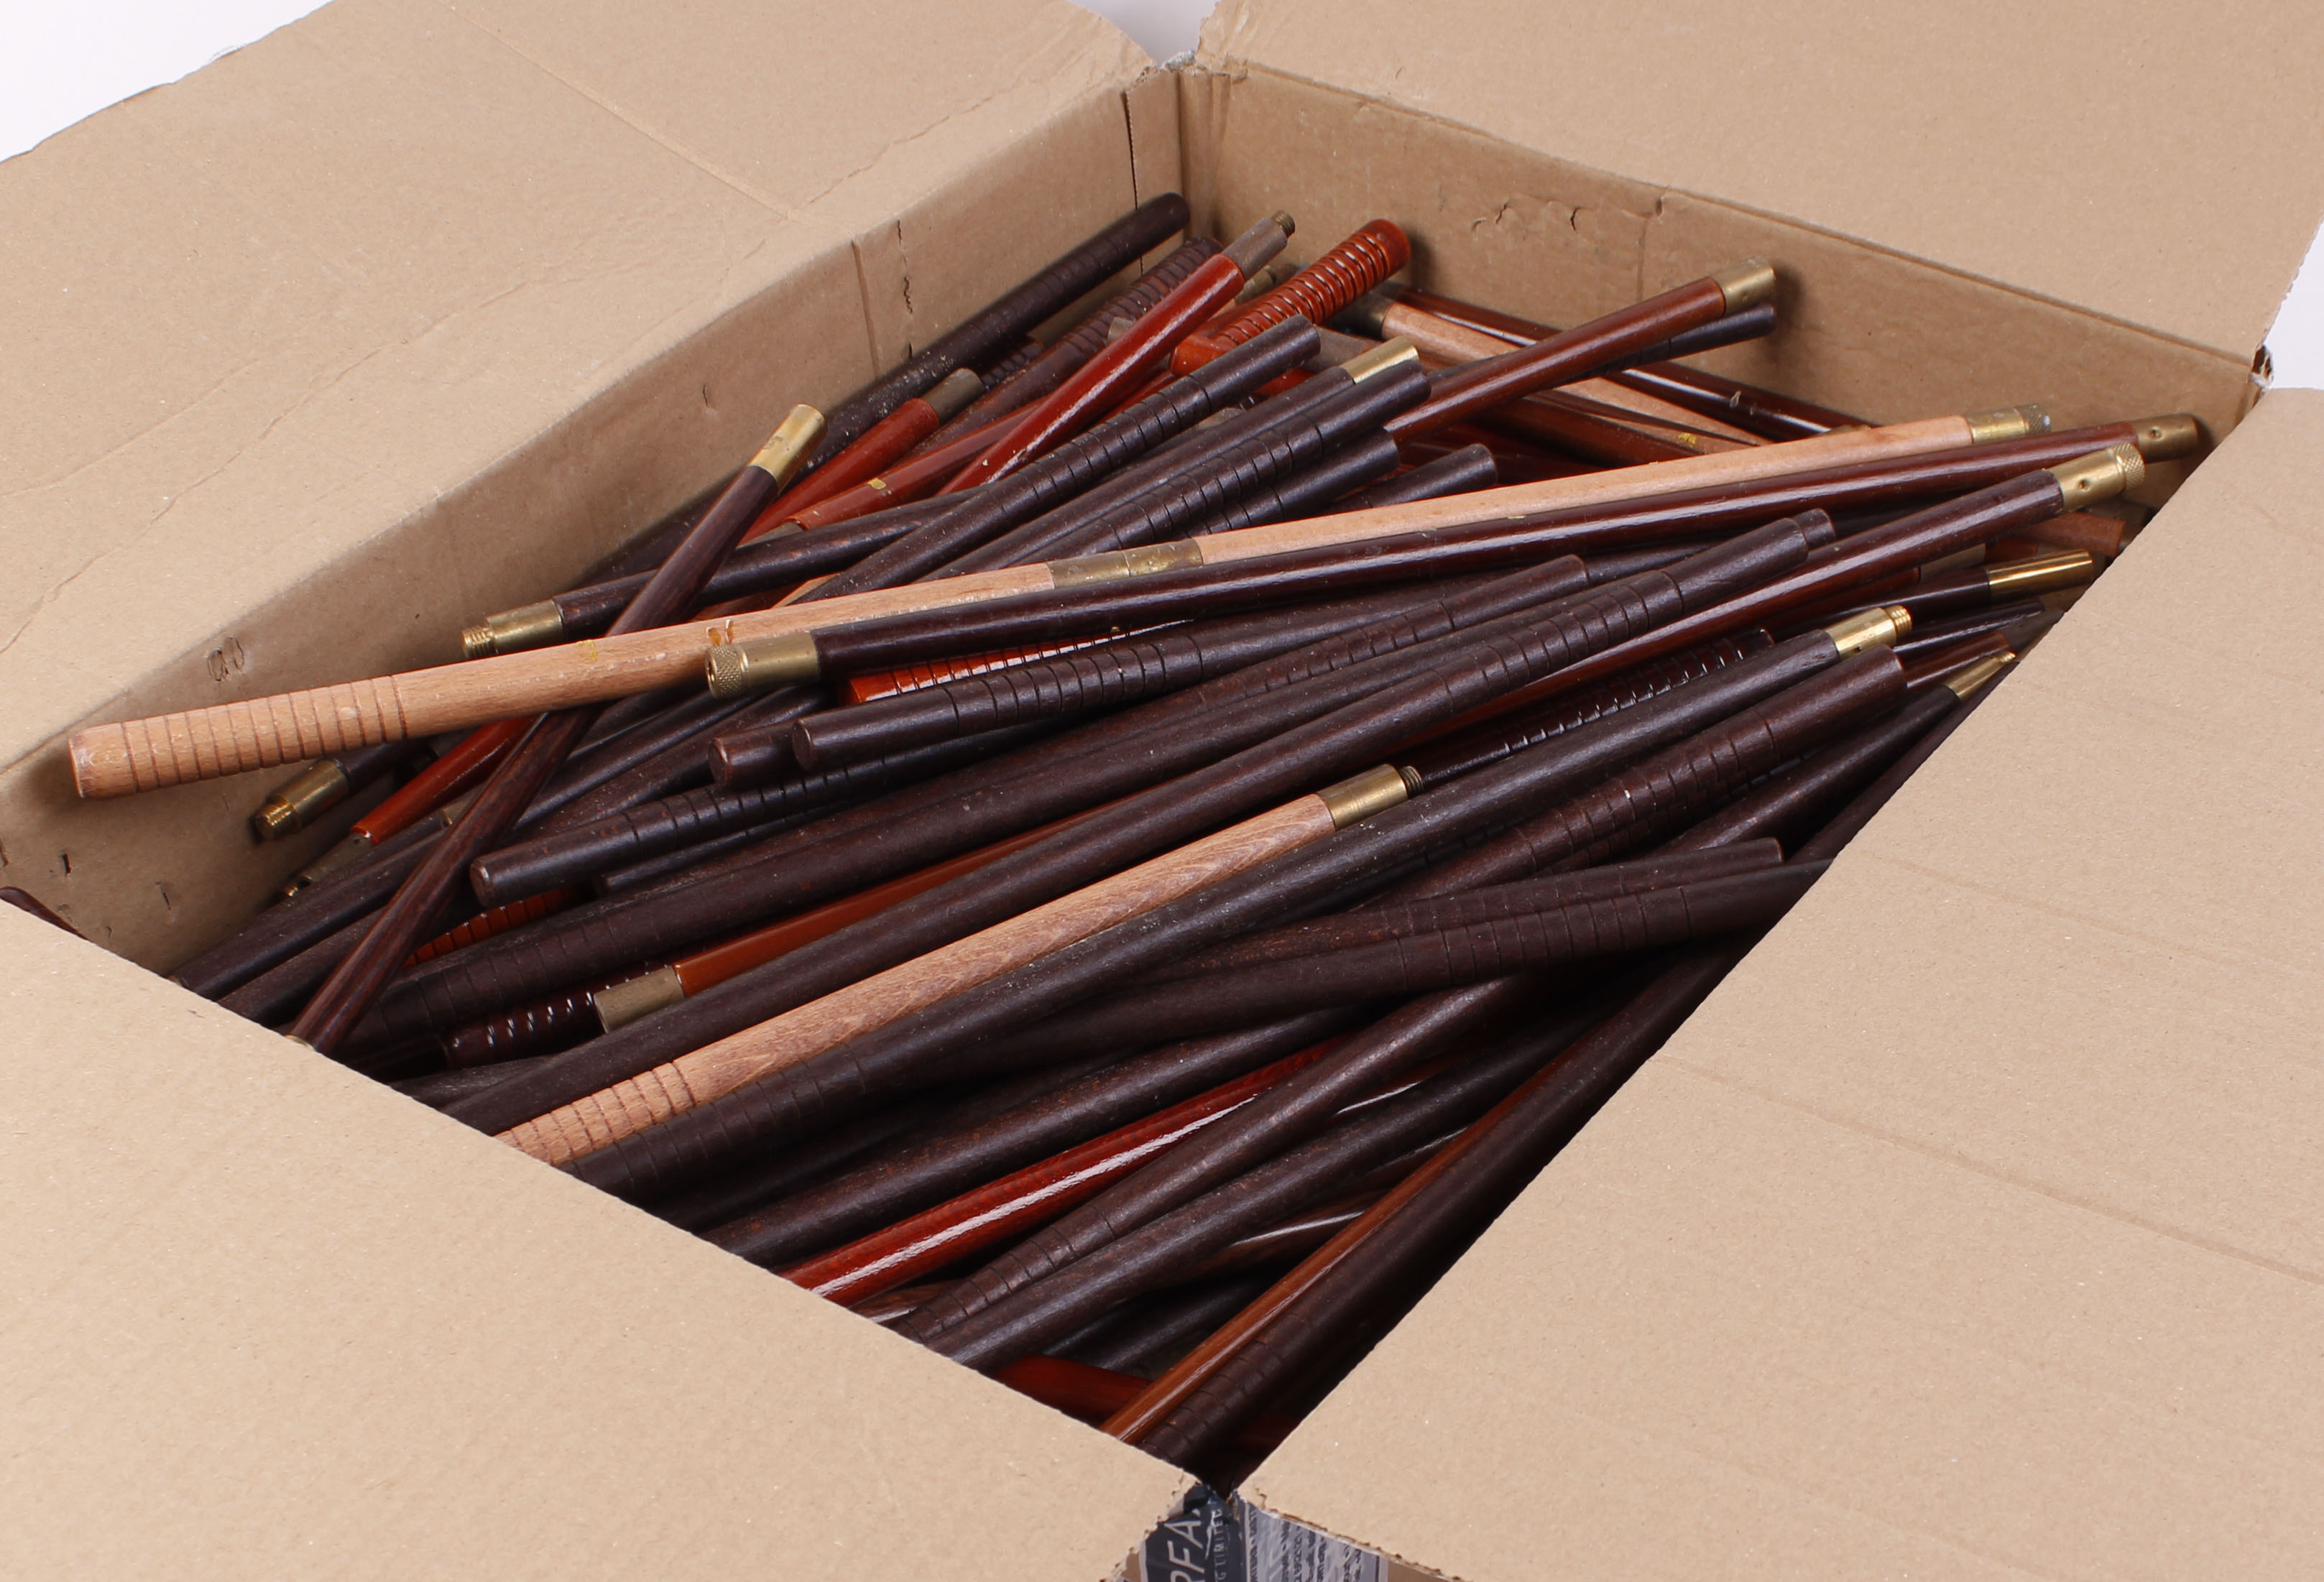 Lot 13 - Large quantity of wooden cleaning rods